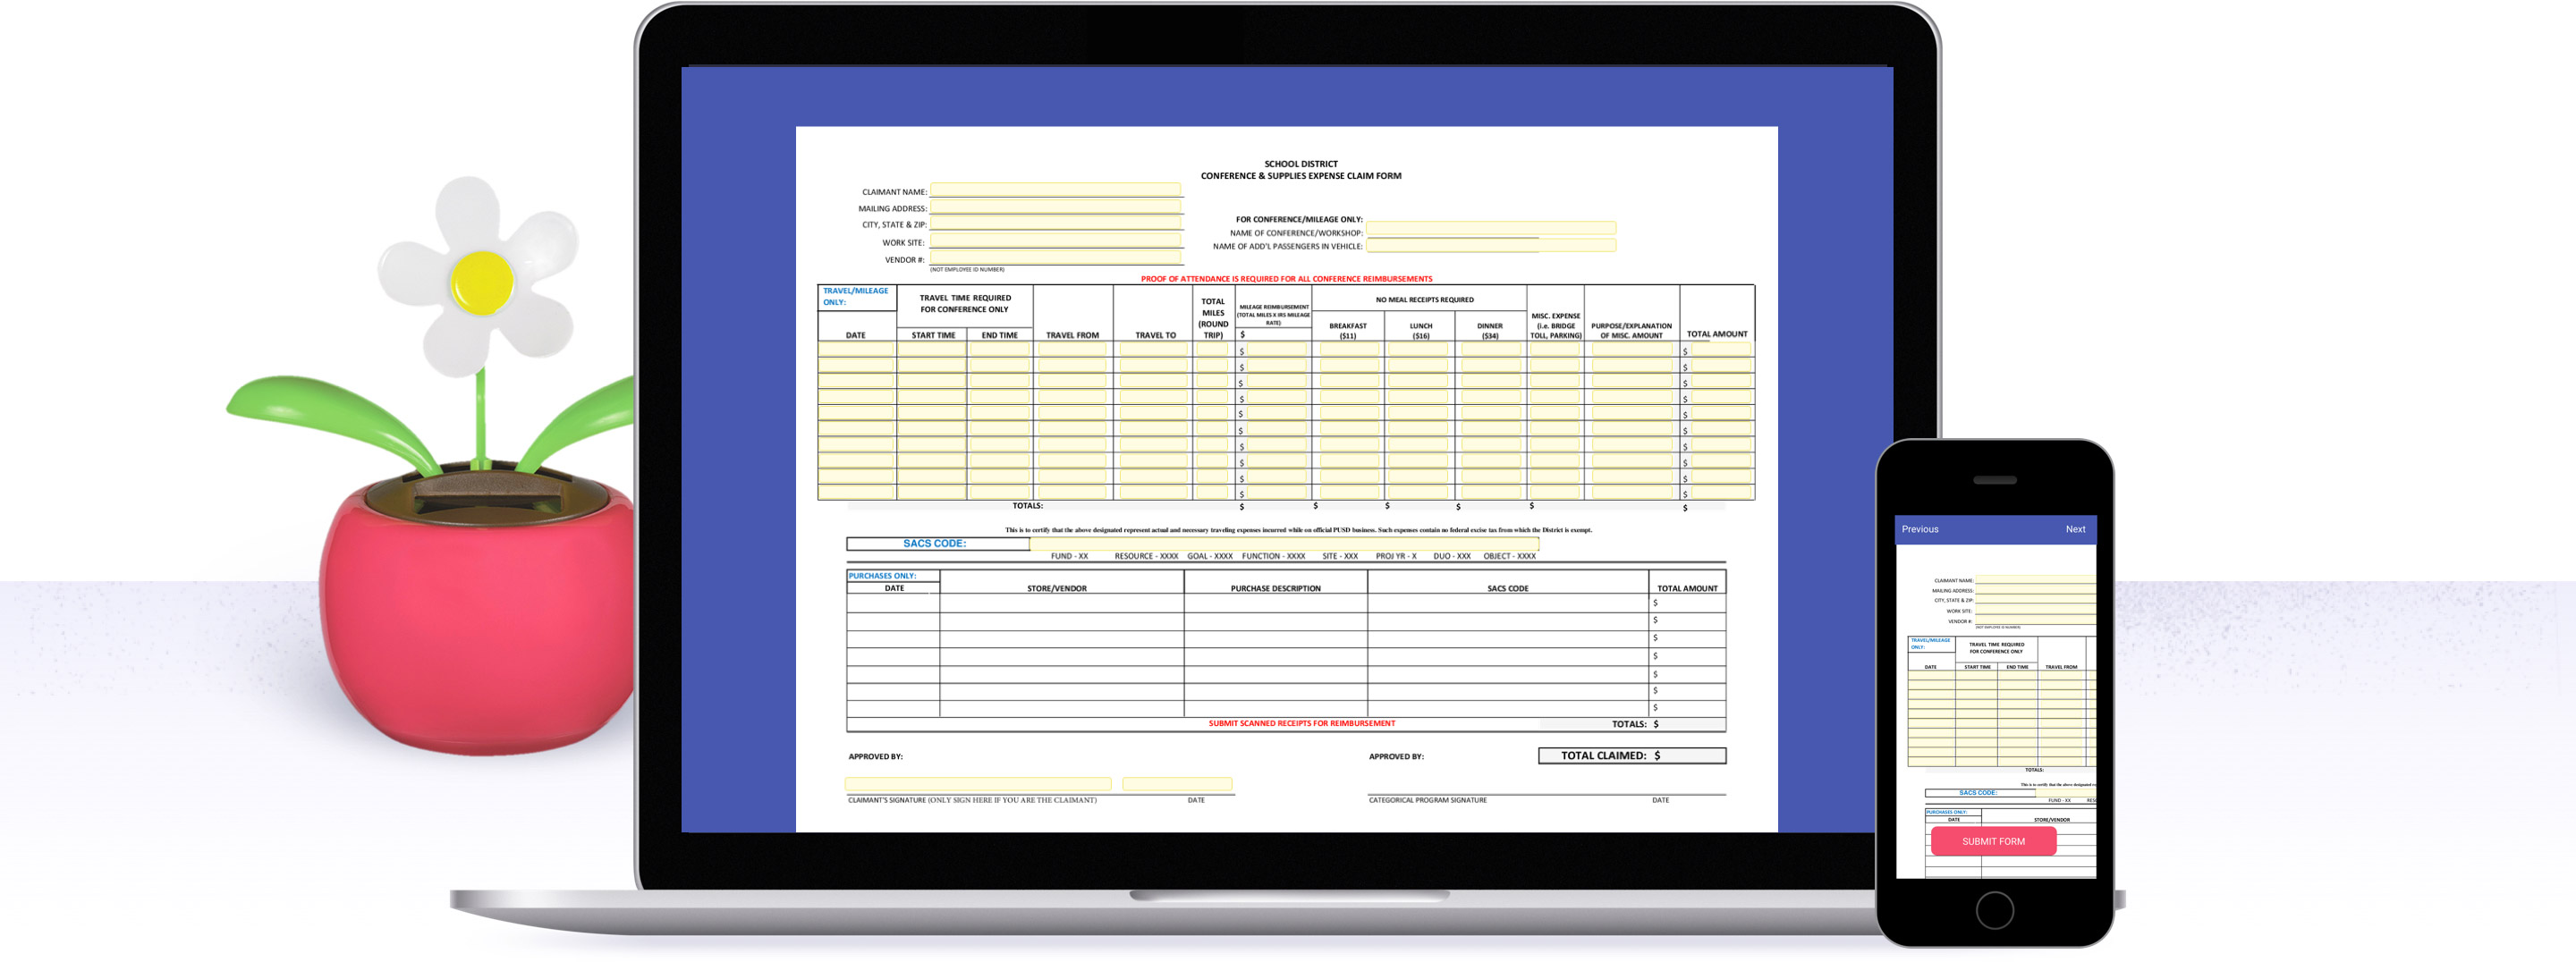 FEATURE - ONLINE FORMS